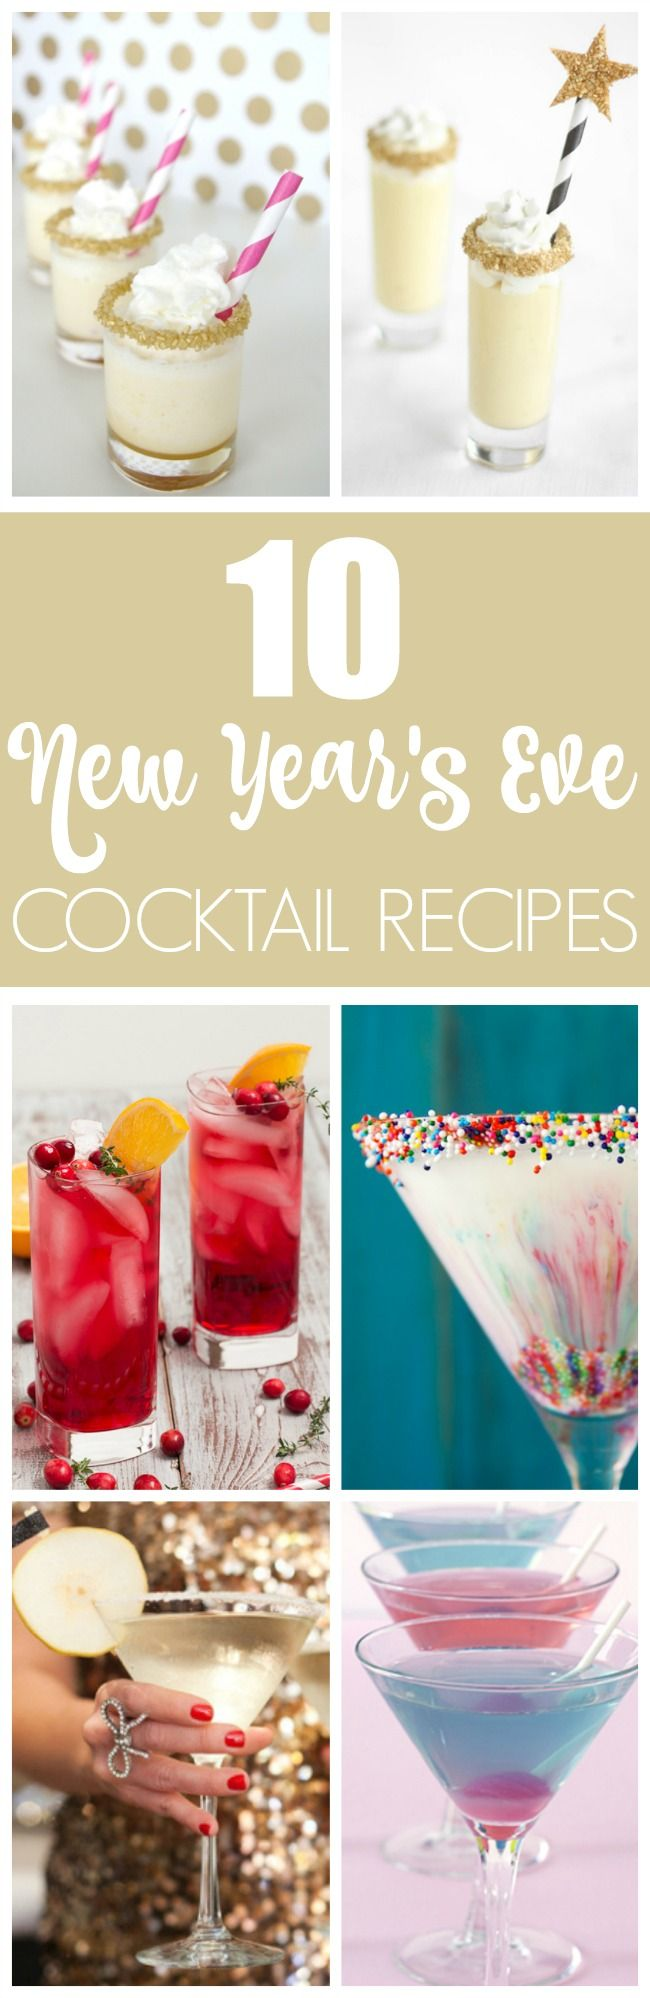 10 Fun Cocktail Ideas For Your New Year's Party | Pretty My Party